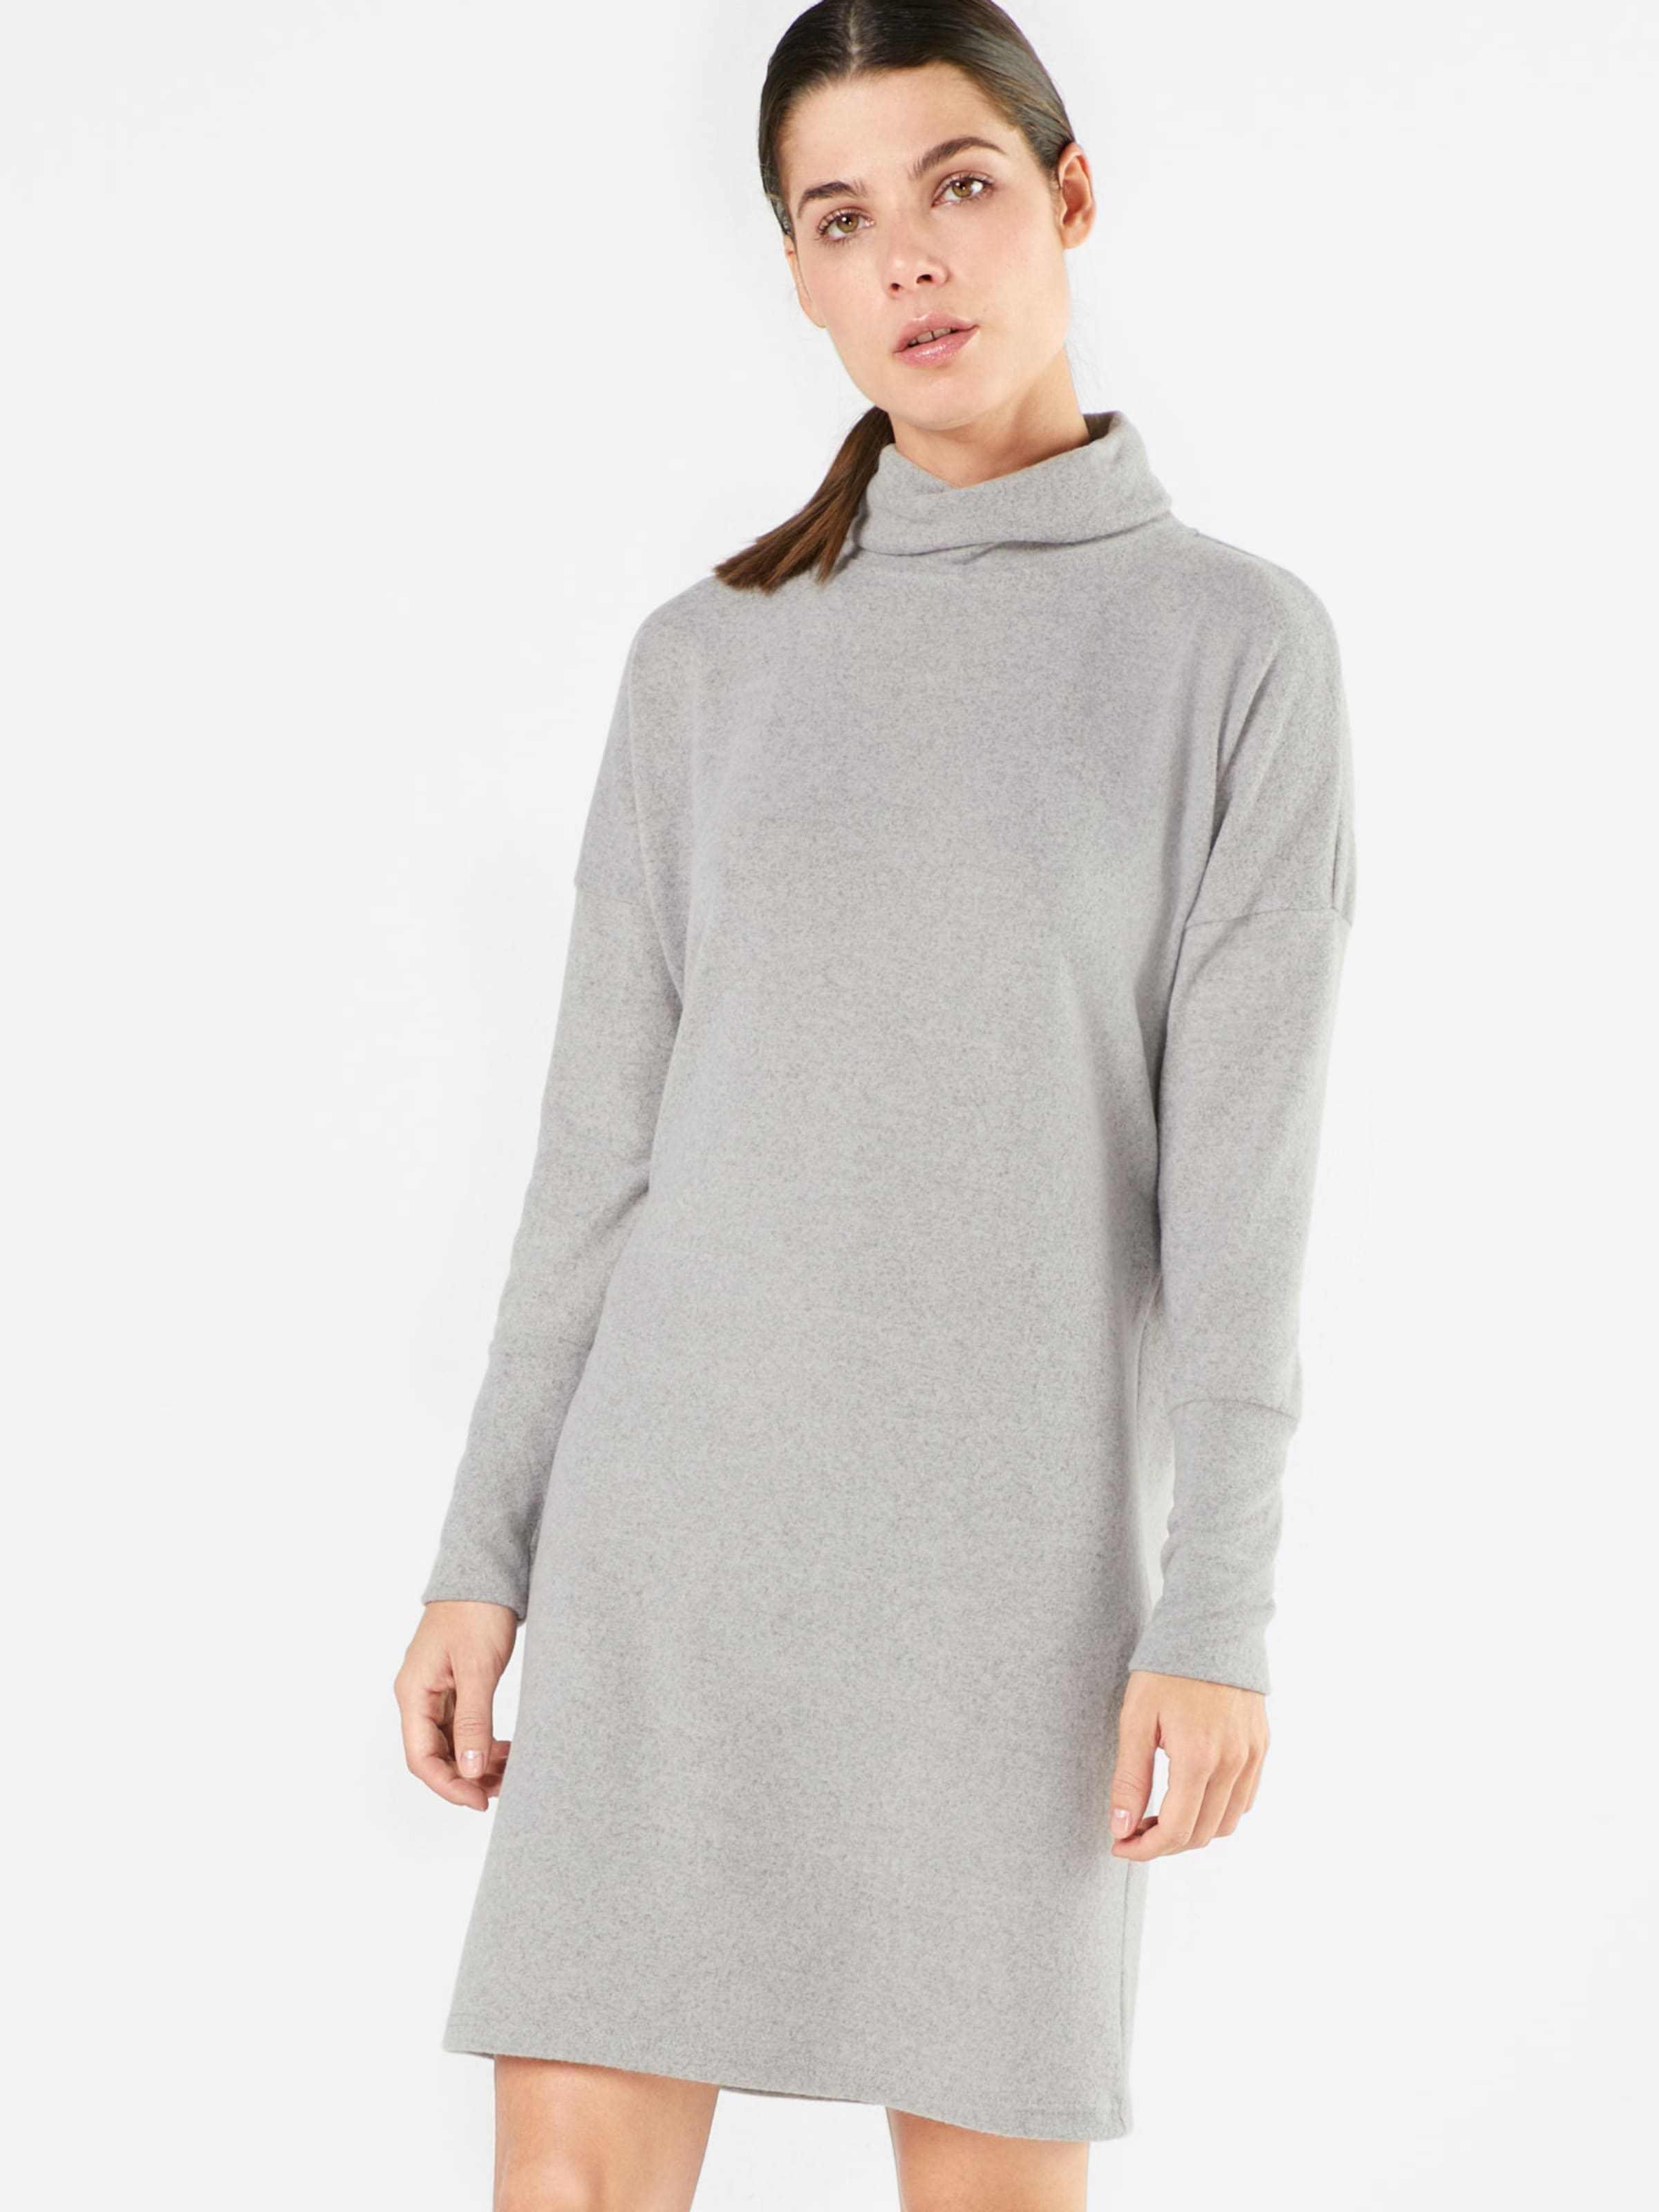 Robes May En Maille Clair Gris 'nmcity' Noisy XOPn80wk